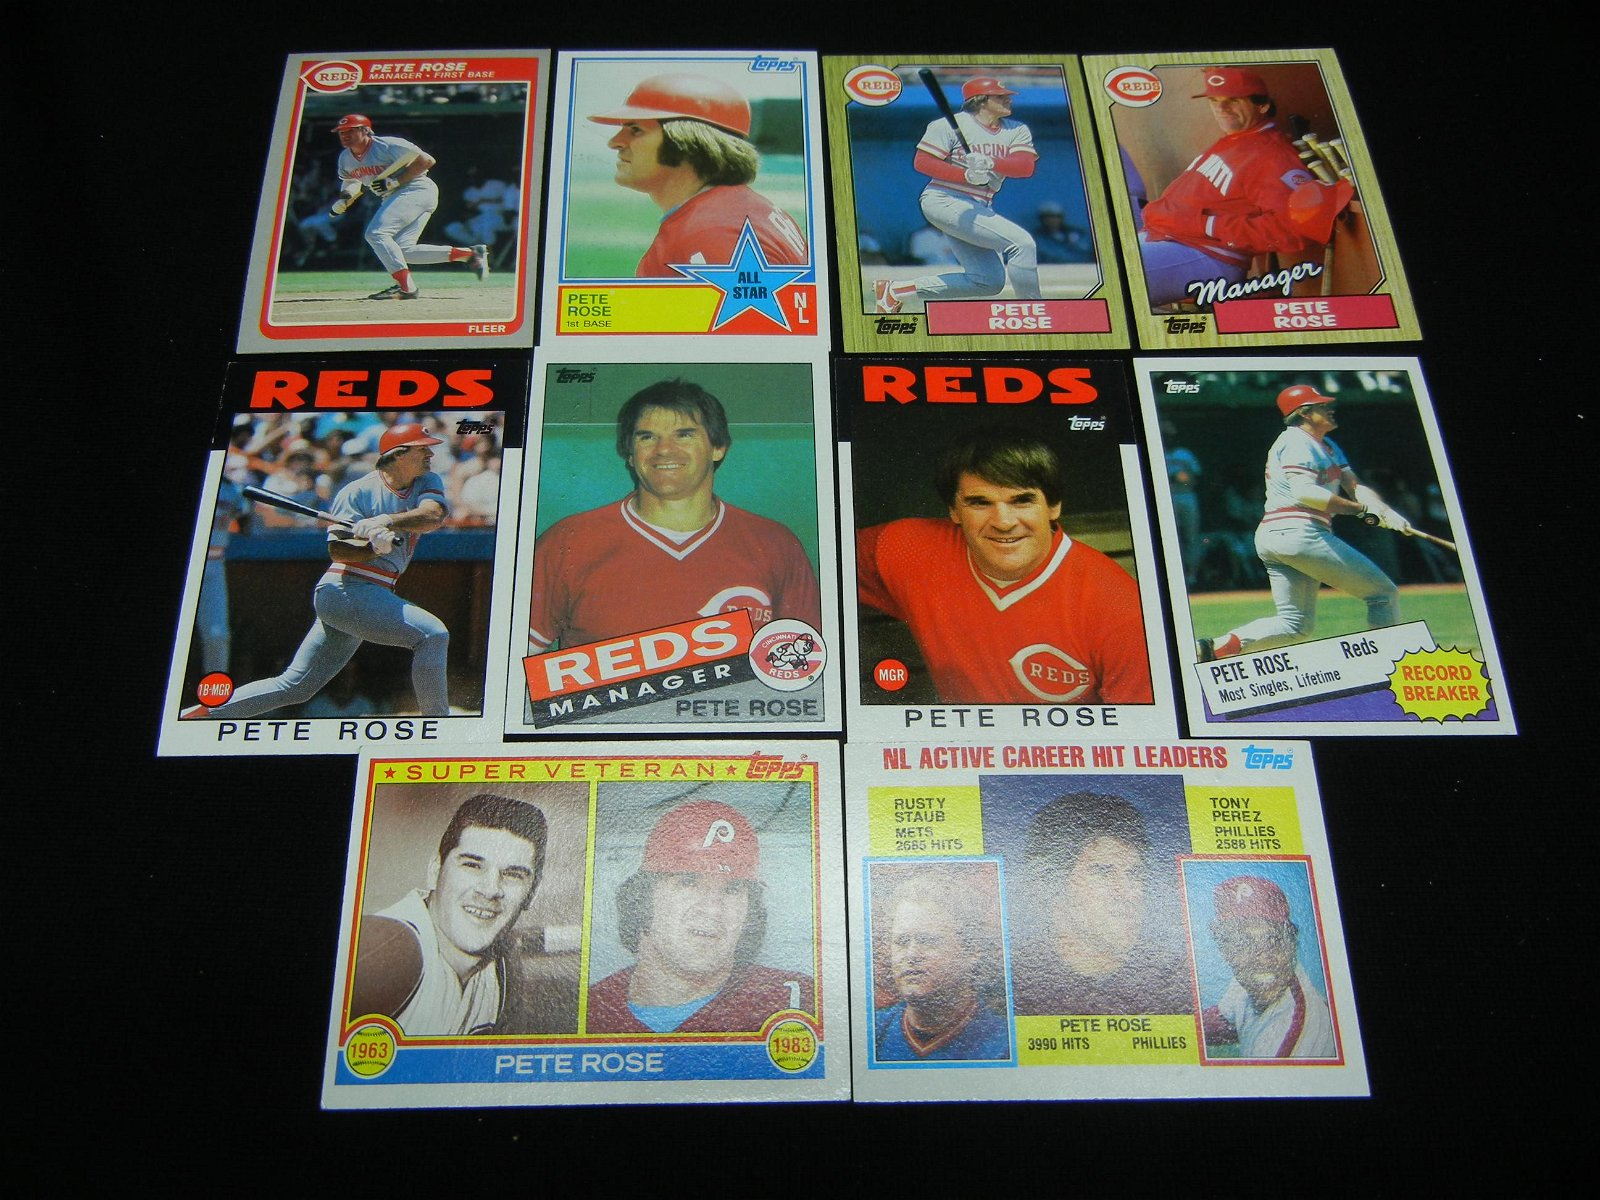 10 Near Mint Pete Rose Baseball Cards